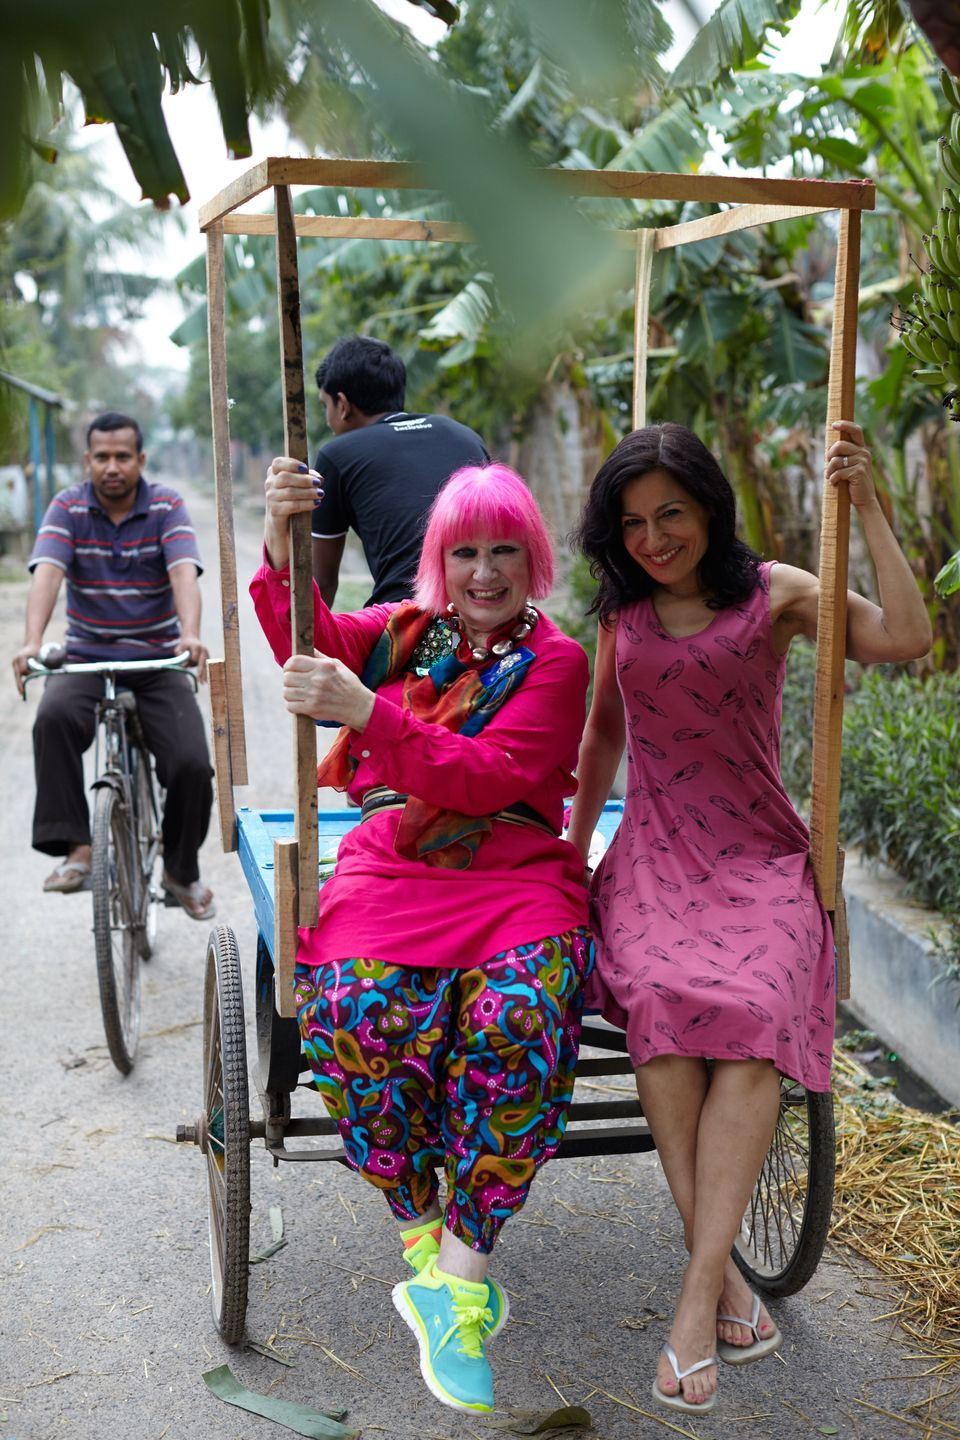 Zandra Rhodes On London Fashion Week And Sustainable Fashion: 'Soon We Won't Have People Or A